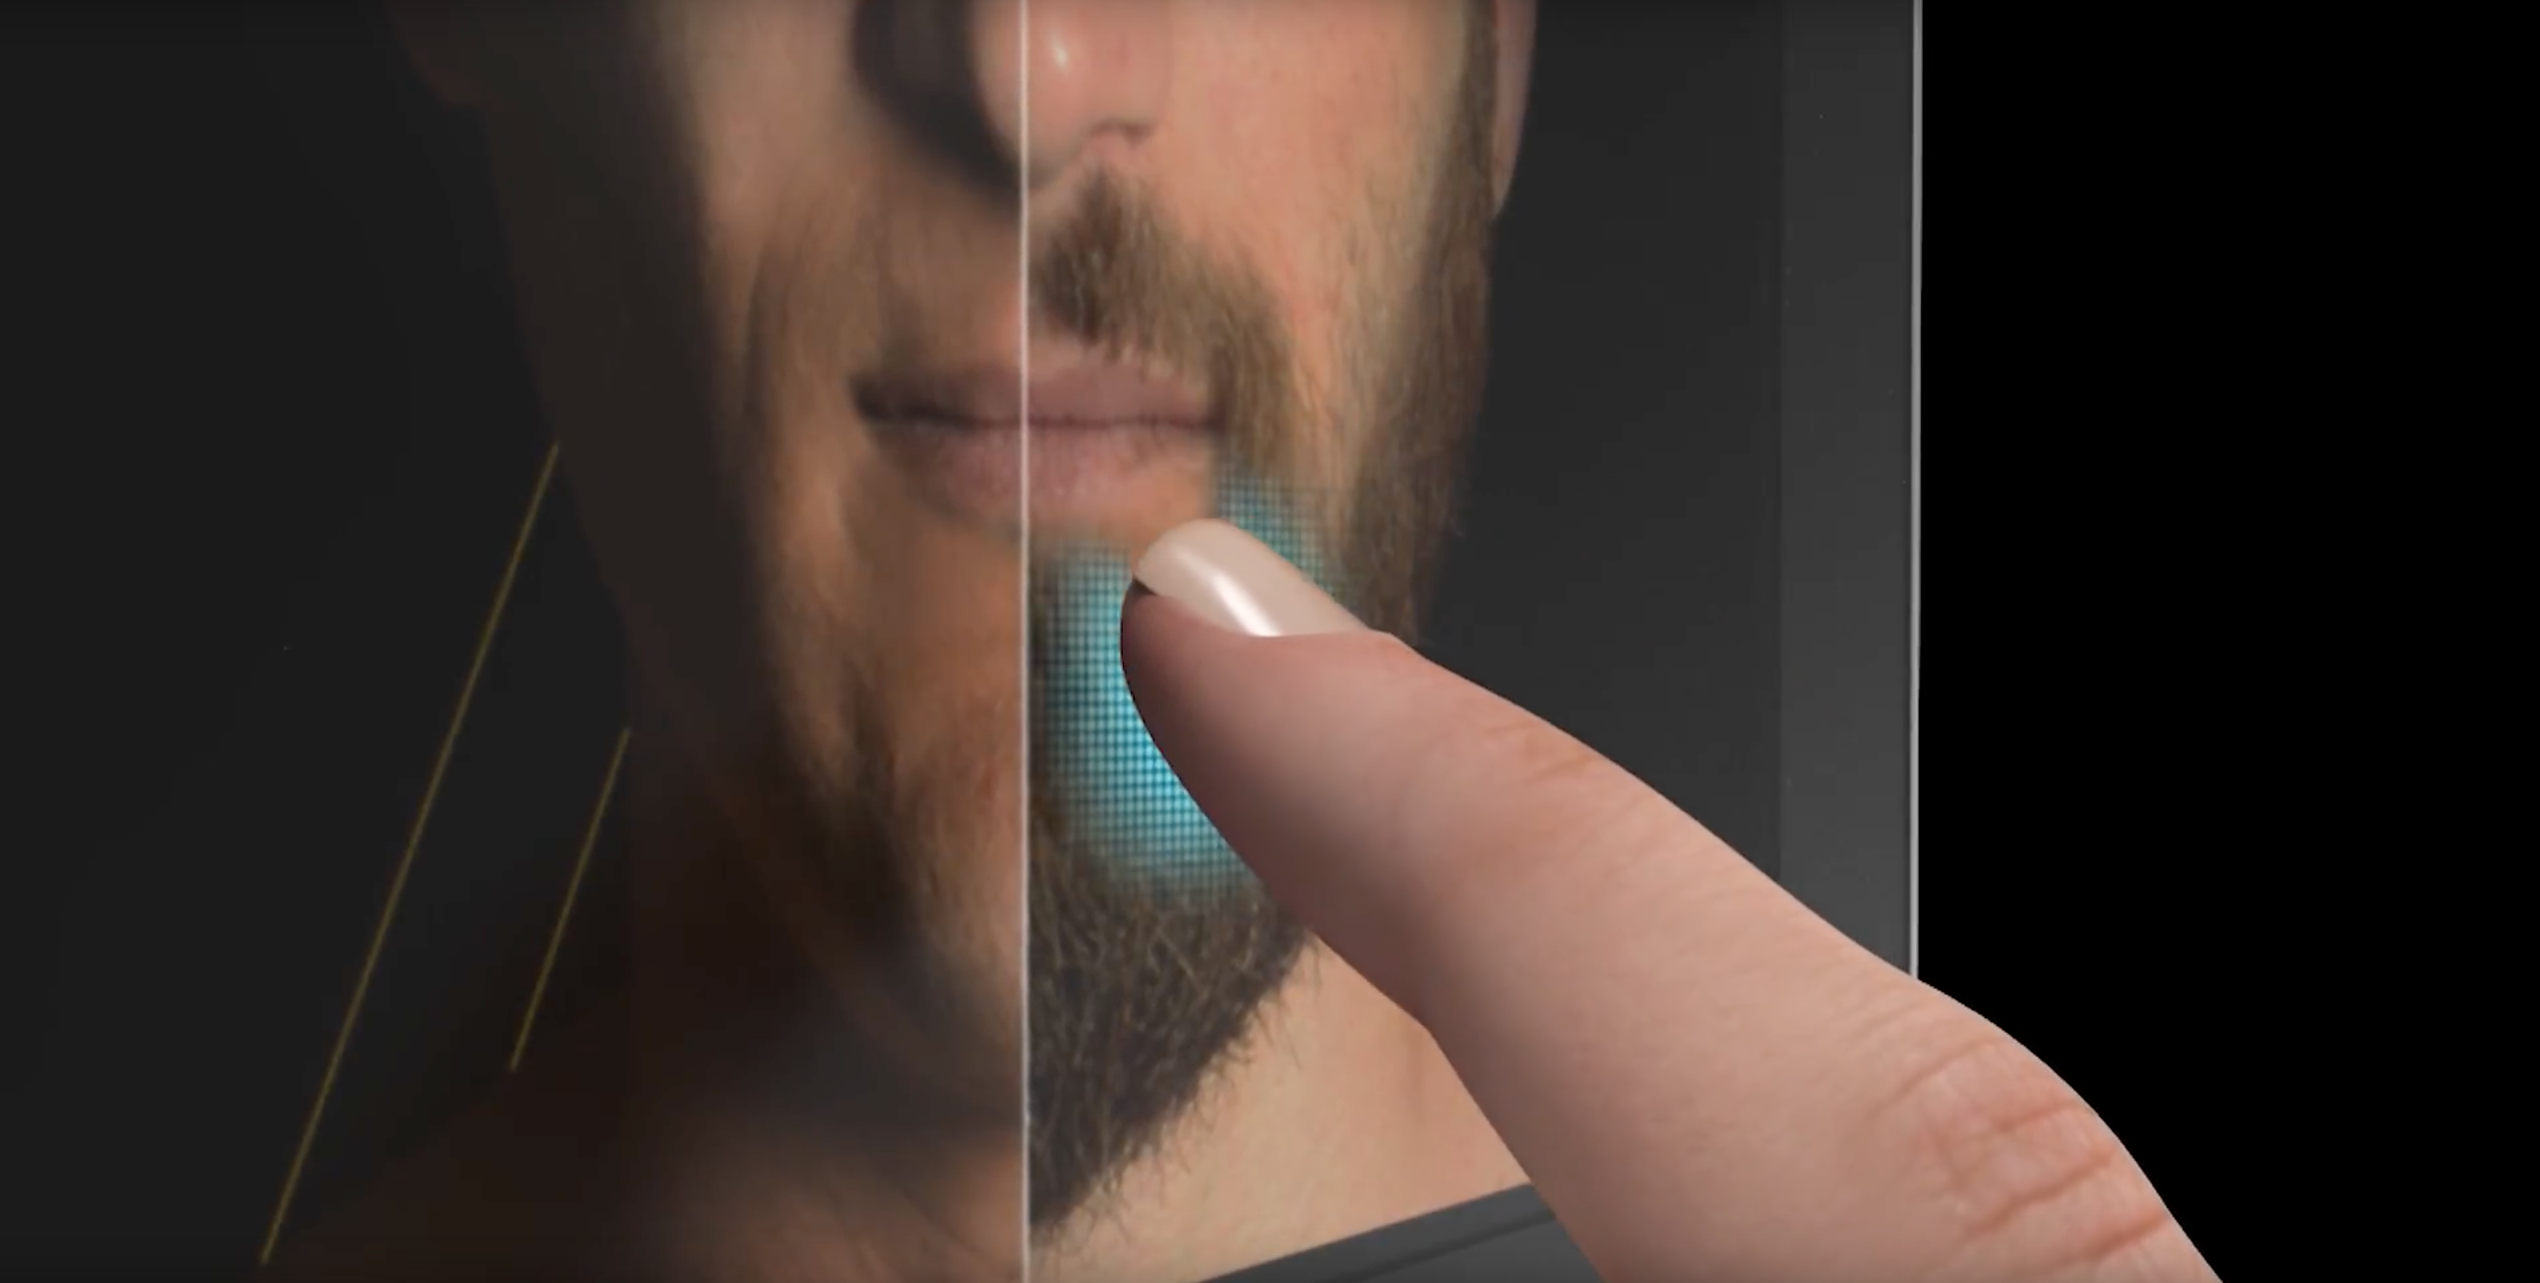 Gillette skin to surface haptic campaign